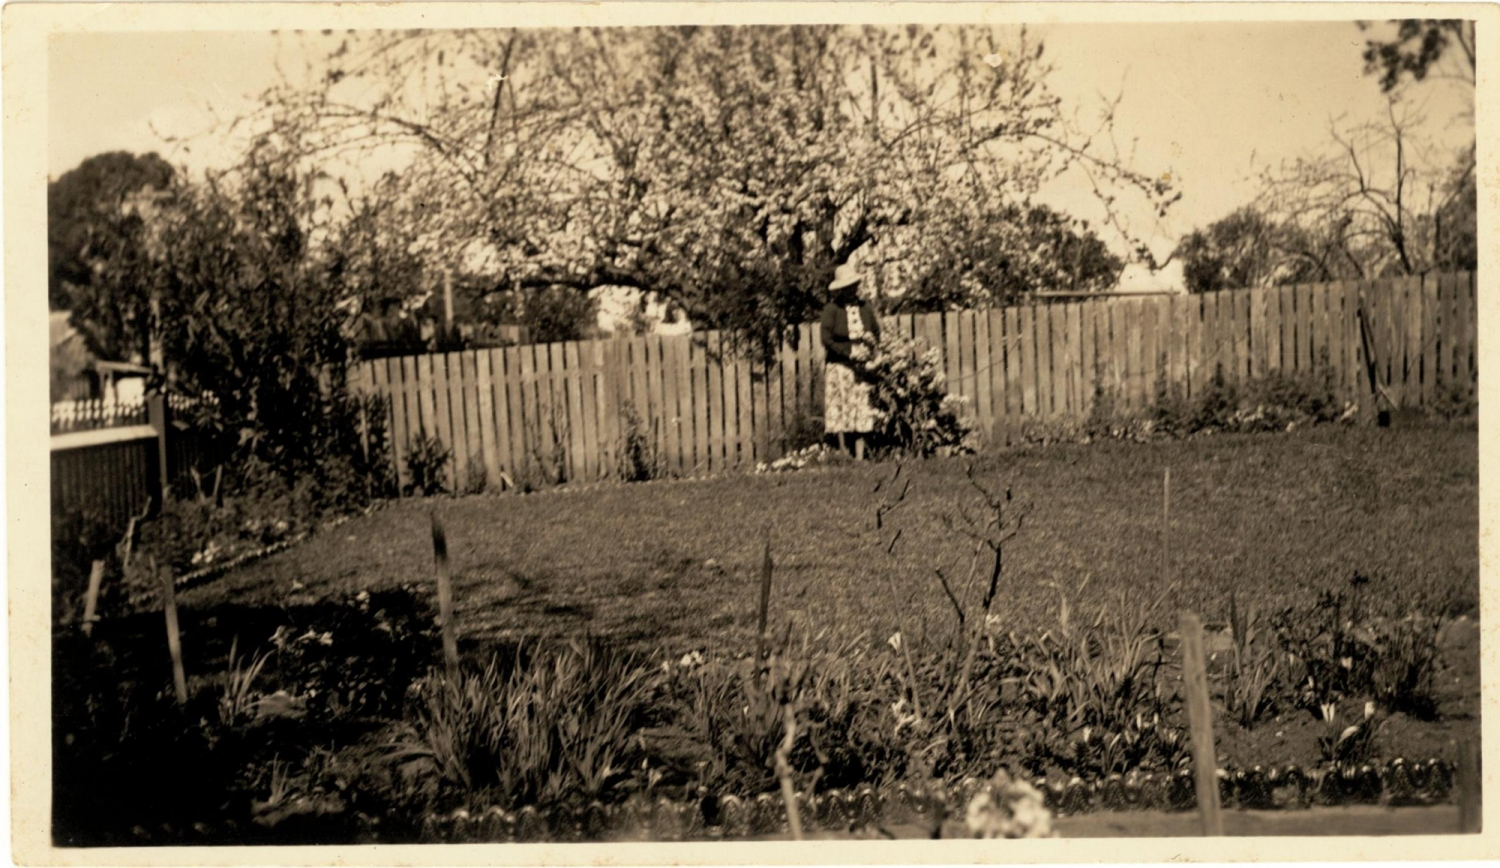 Black and white photo of woman in garden, in front of wooden paling fence.